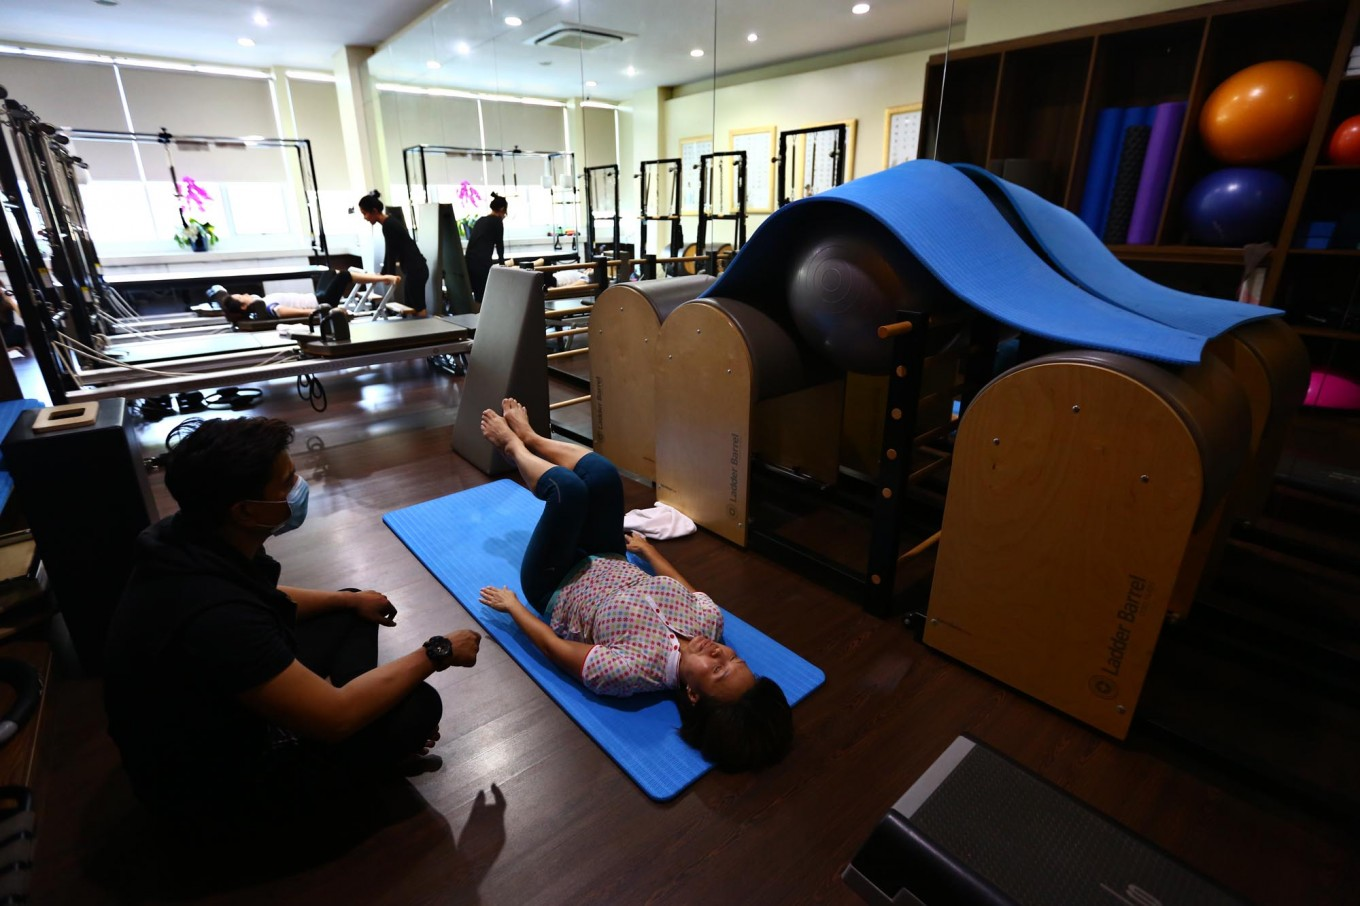 Is pilates actually healthy for you?